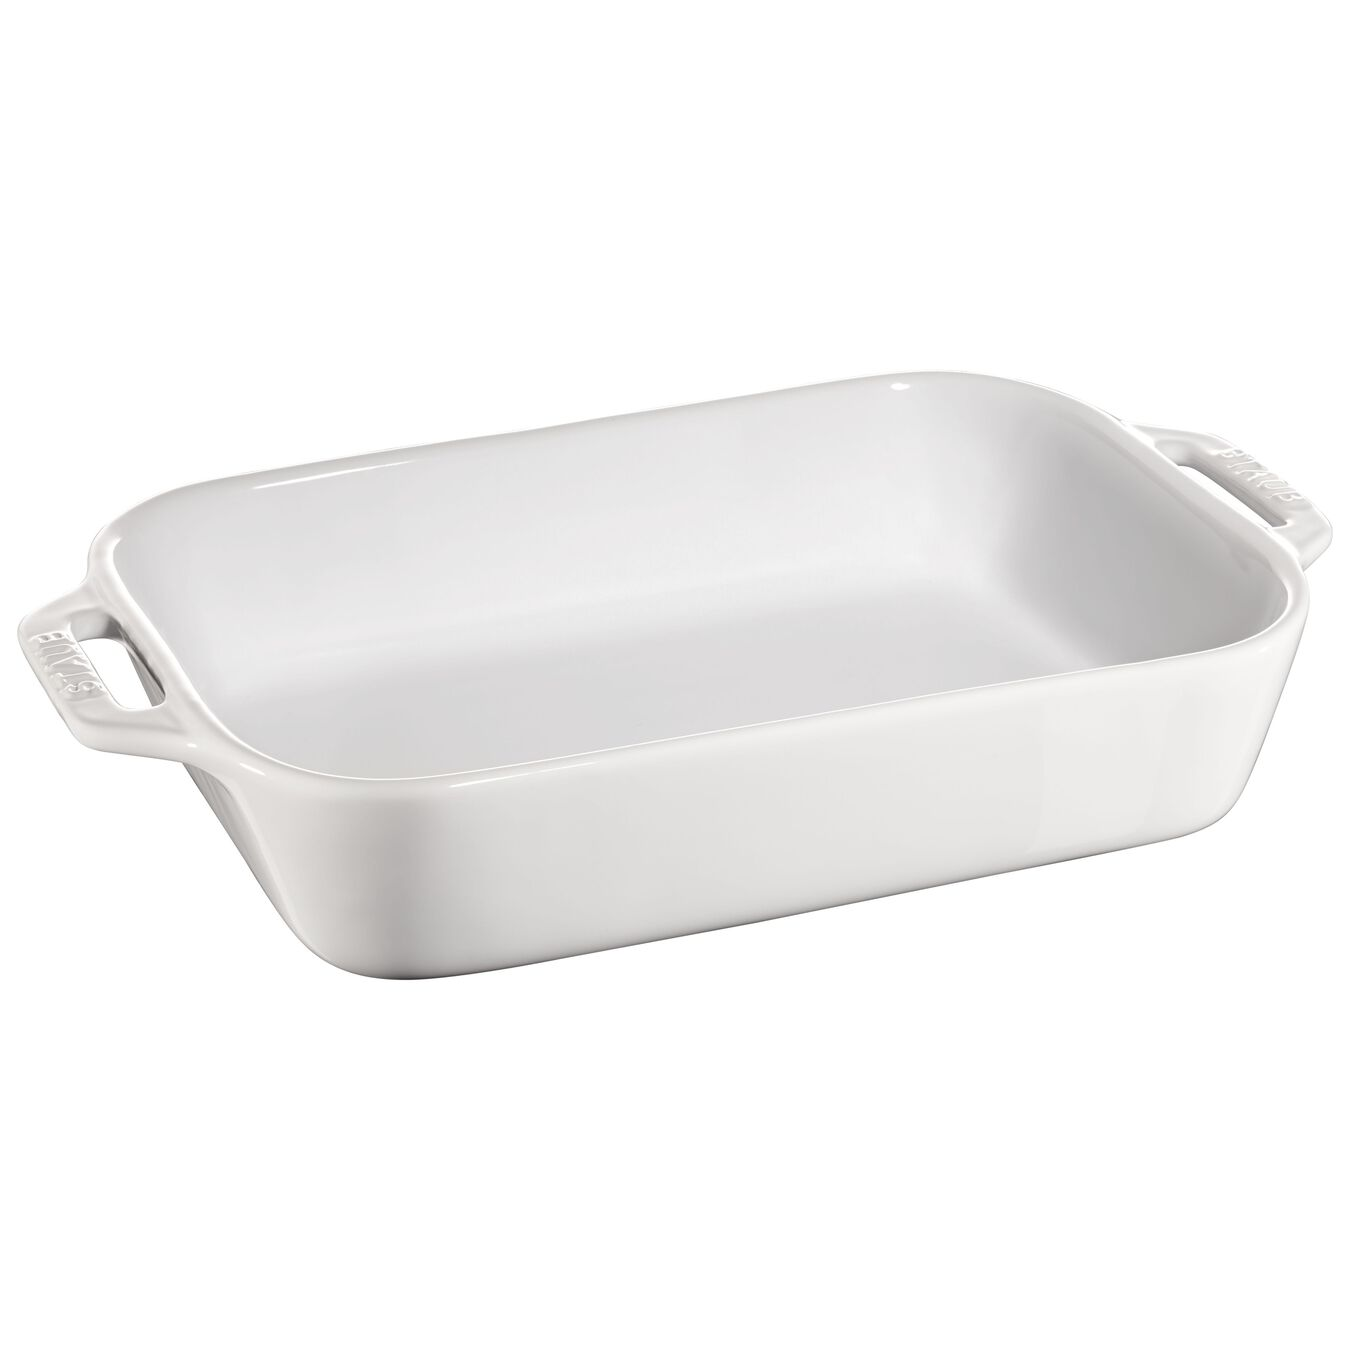 2-pc Rectangular Baking Dish Set - White,,large 2